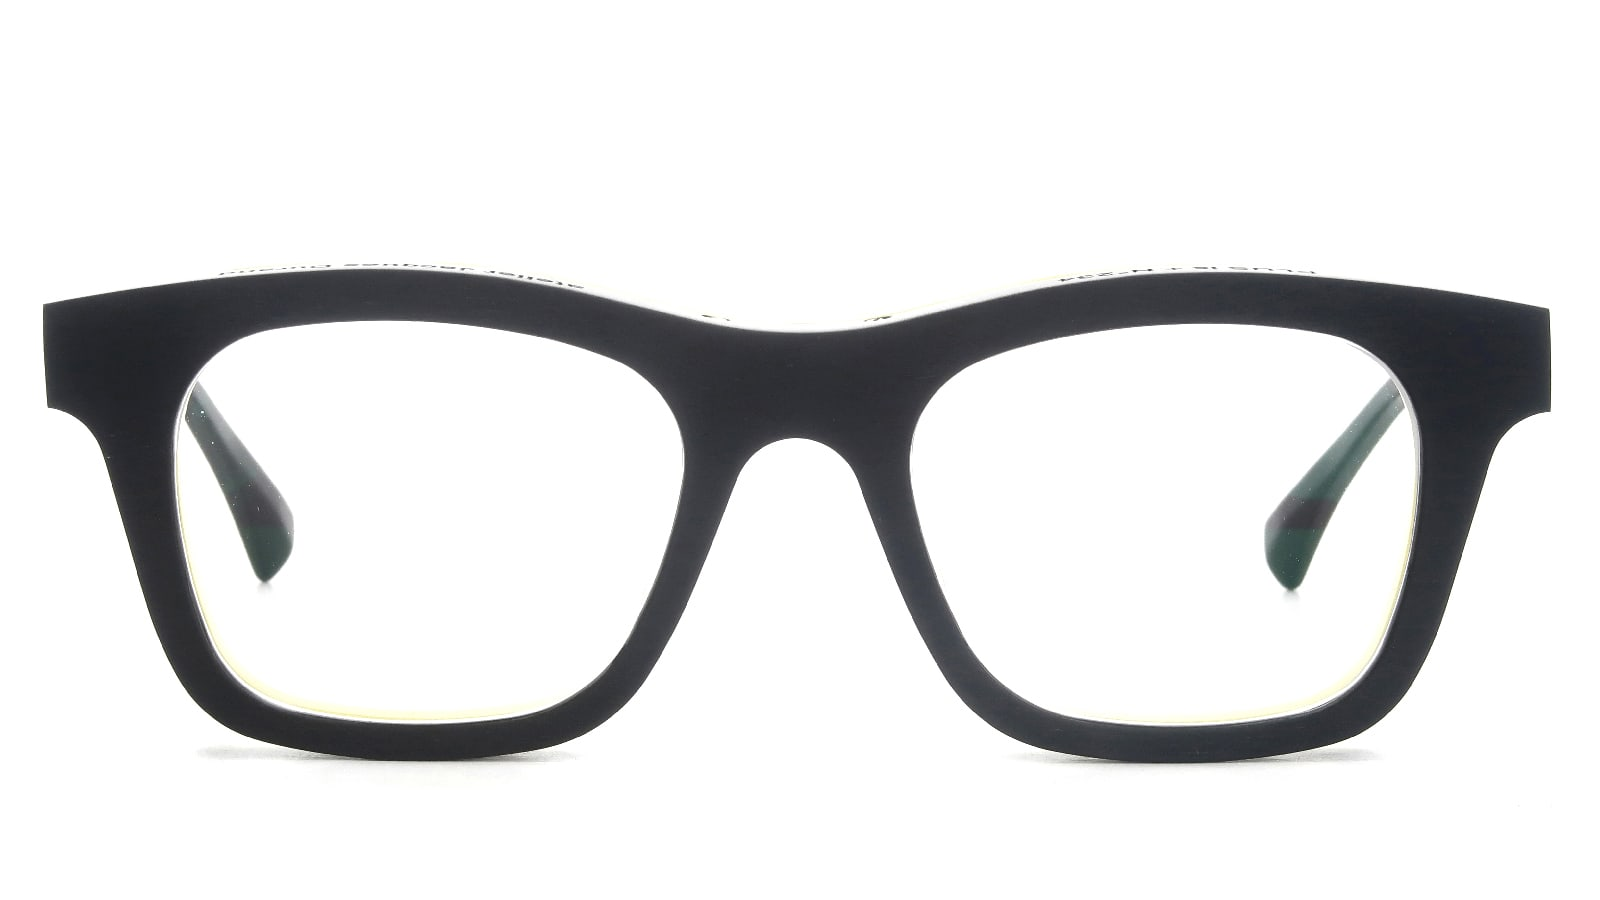 Jacques Durand Plus is + 234(INTRADOS) col.002 HM-black yellow  正面詳細